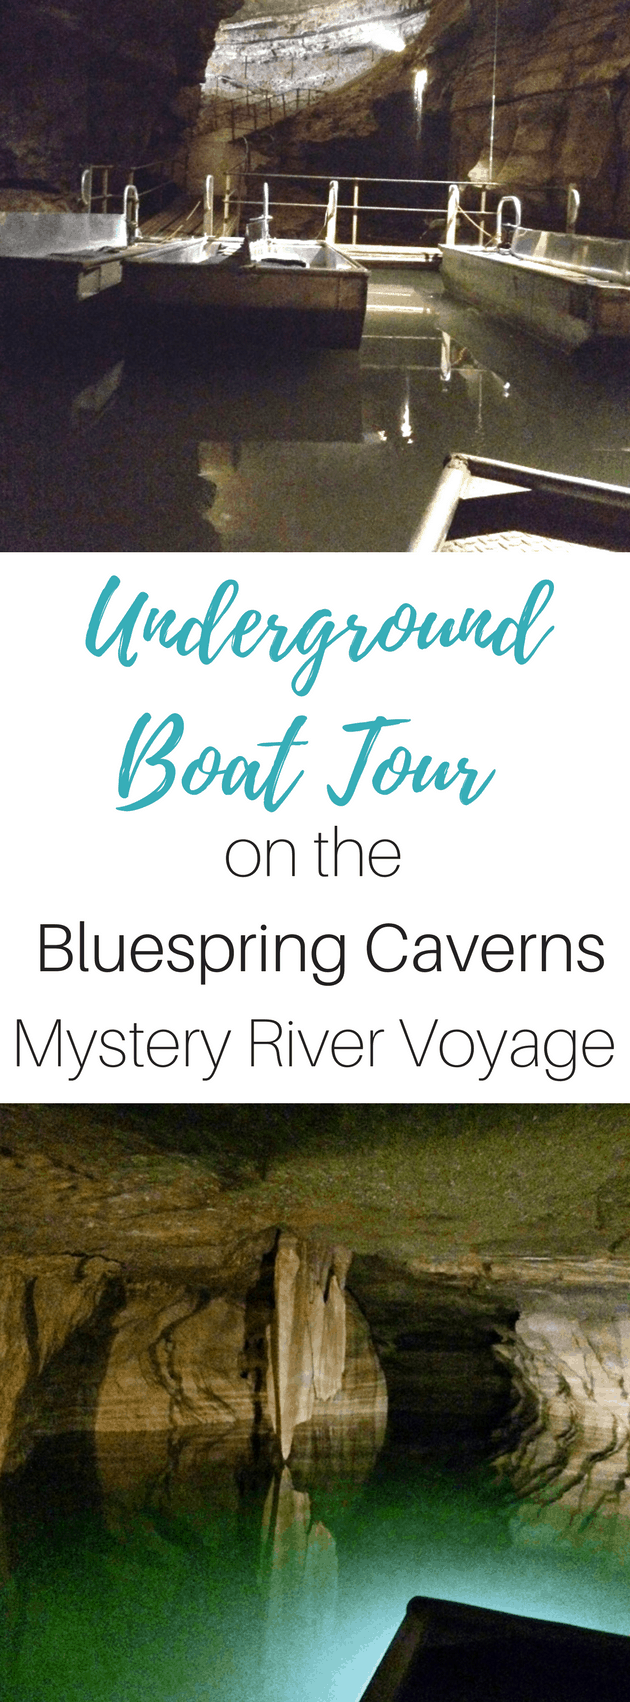 Underground Boat Tour On The Bluespring Caverns Mystery